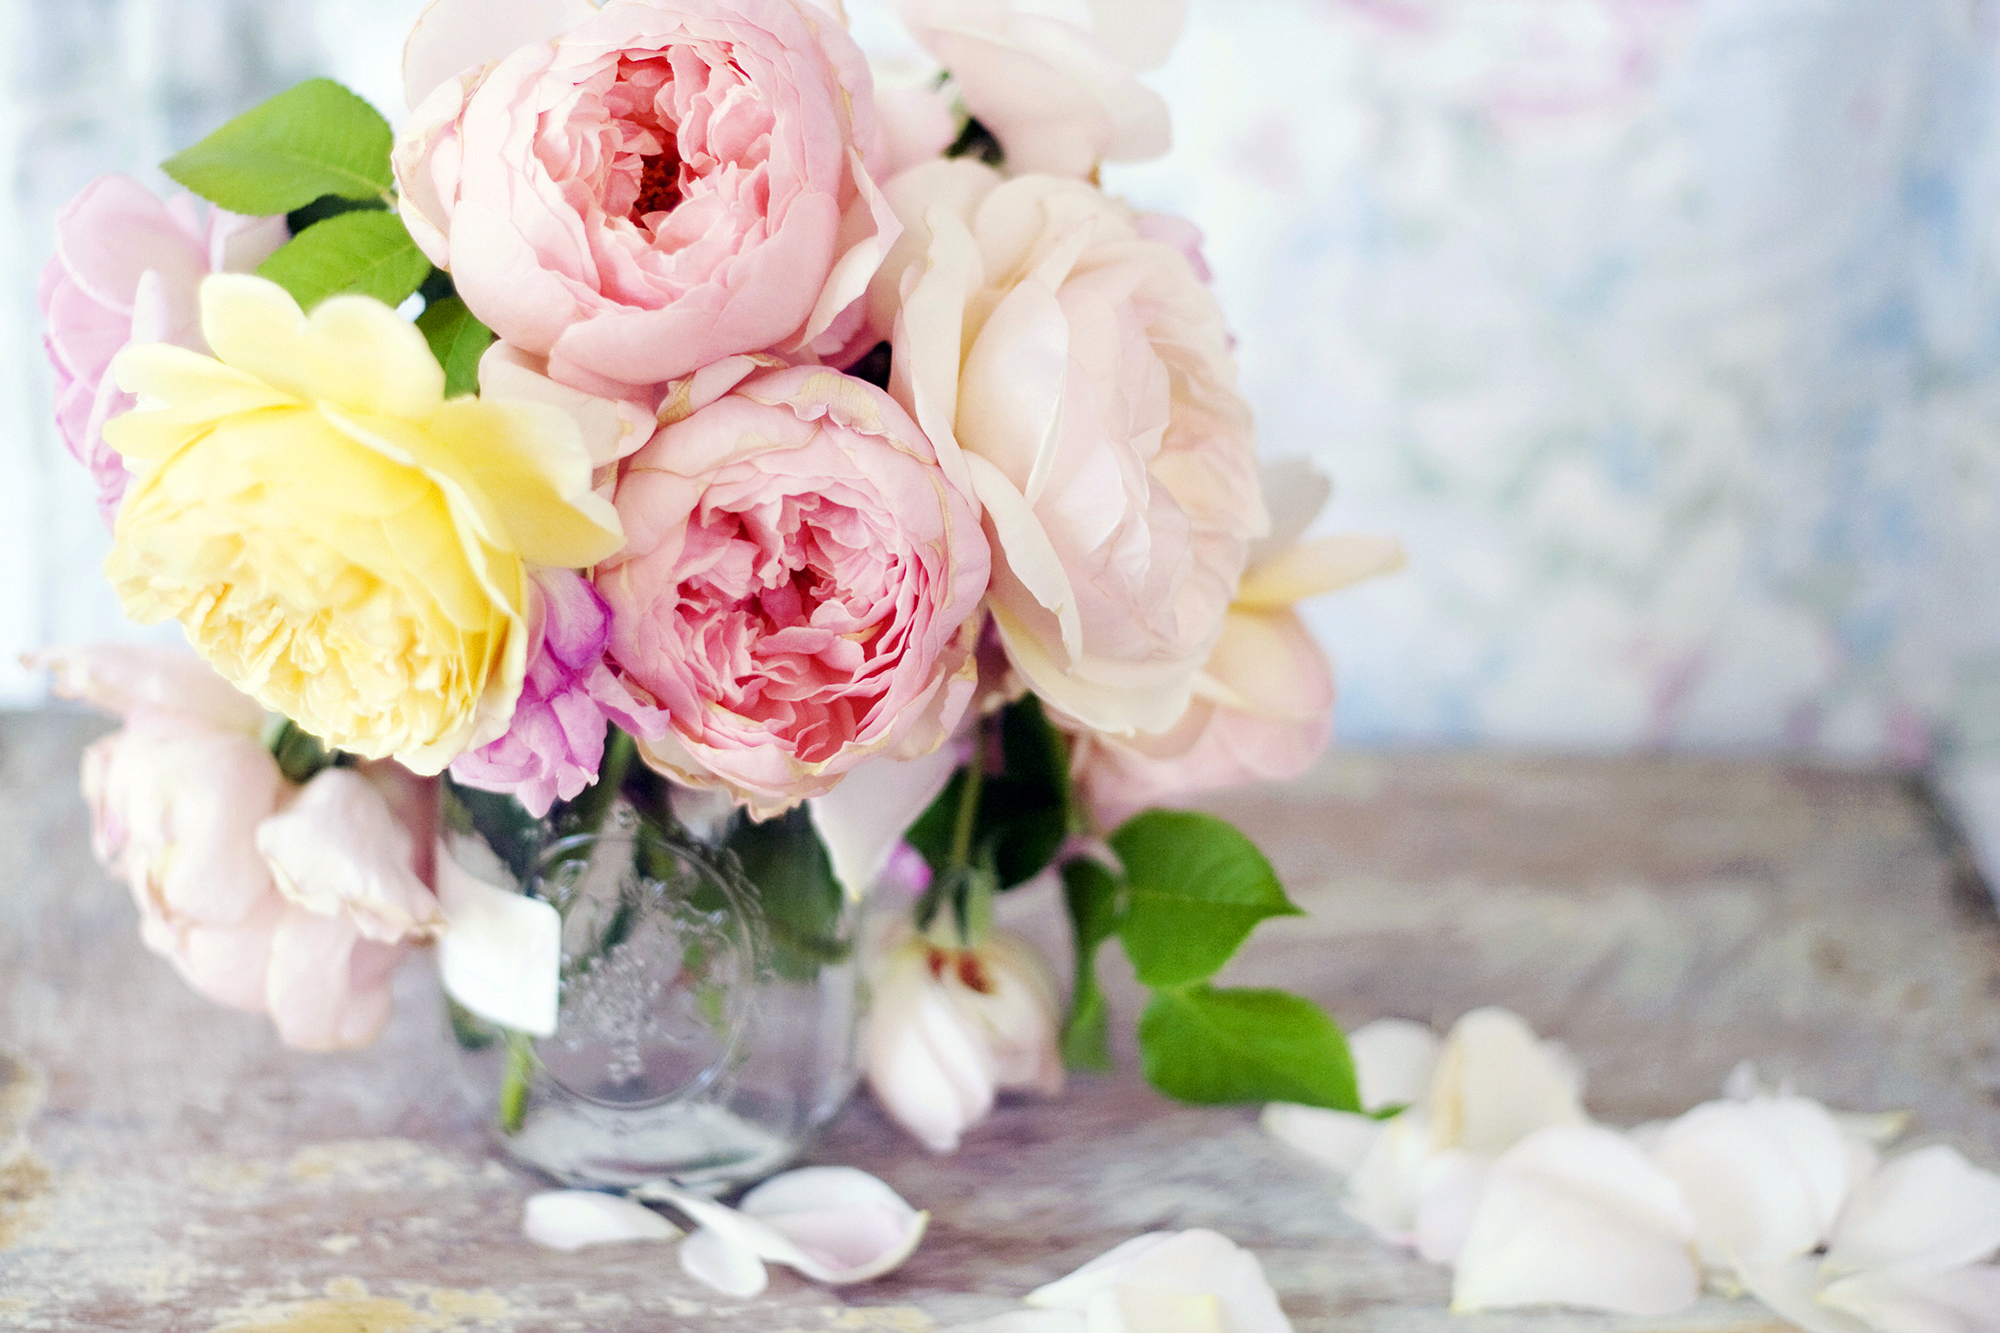 http://ana2cats.com/wp-content/uploads/2014/07/flowers-focus-roses-pink-bokeh-photo-petals-vase-background.jpg